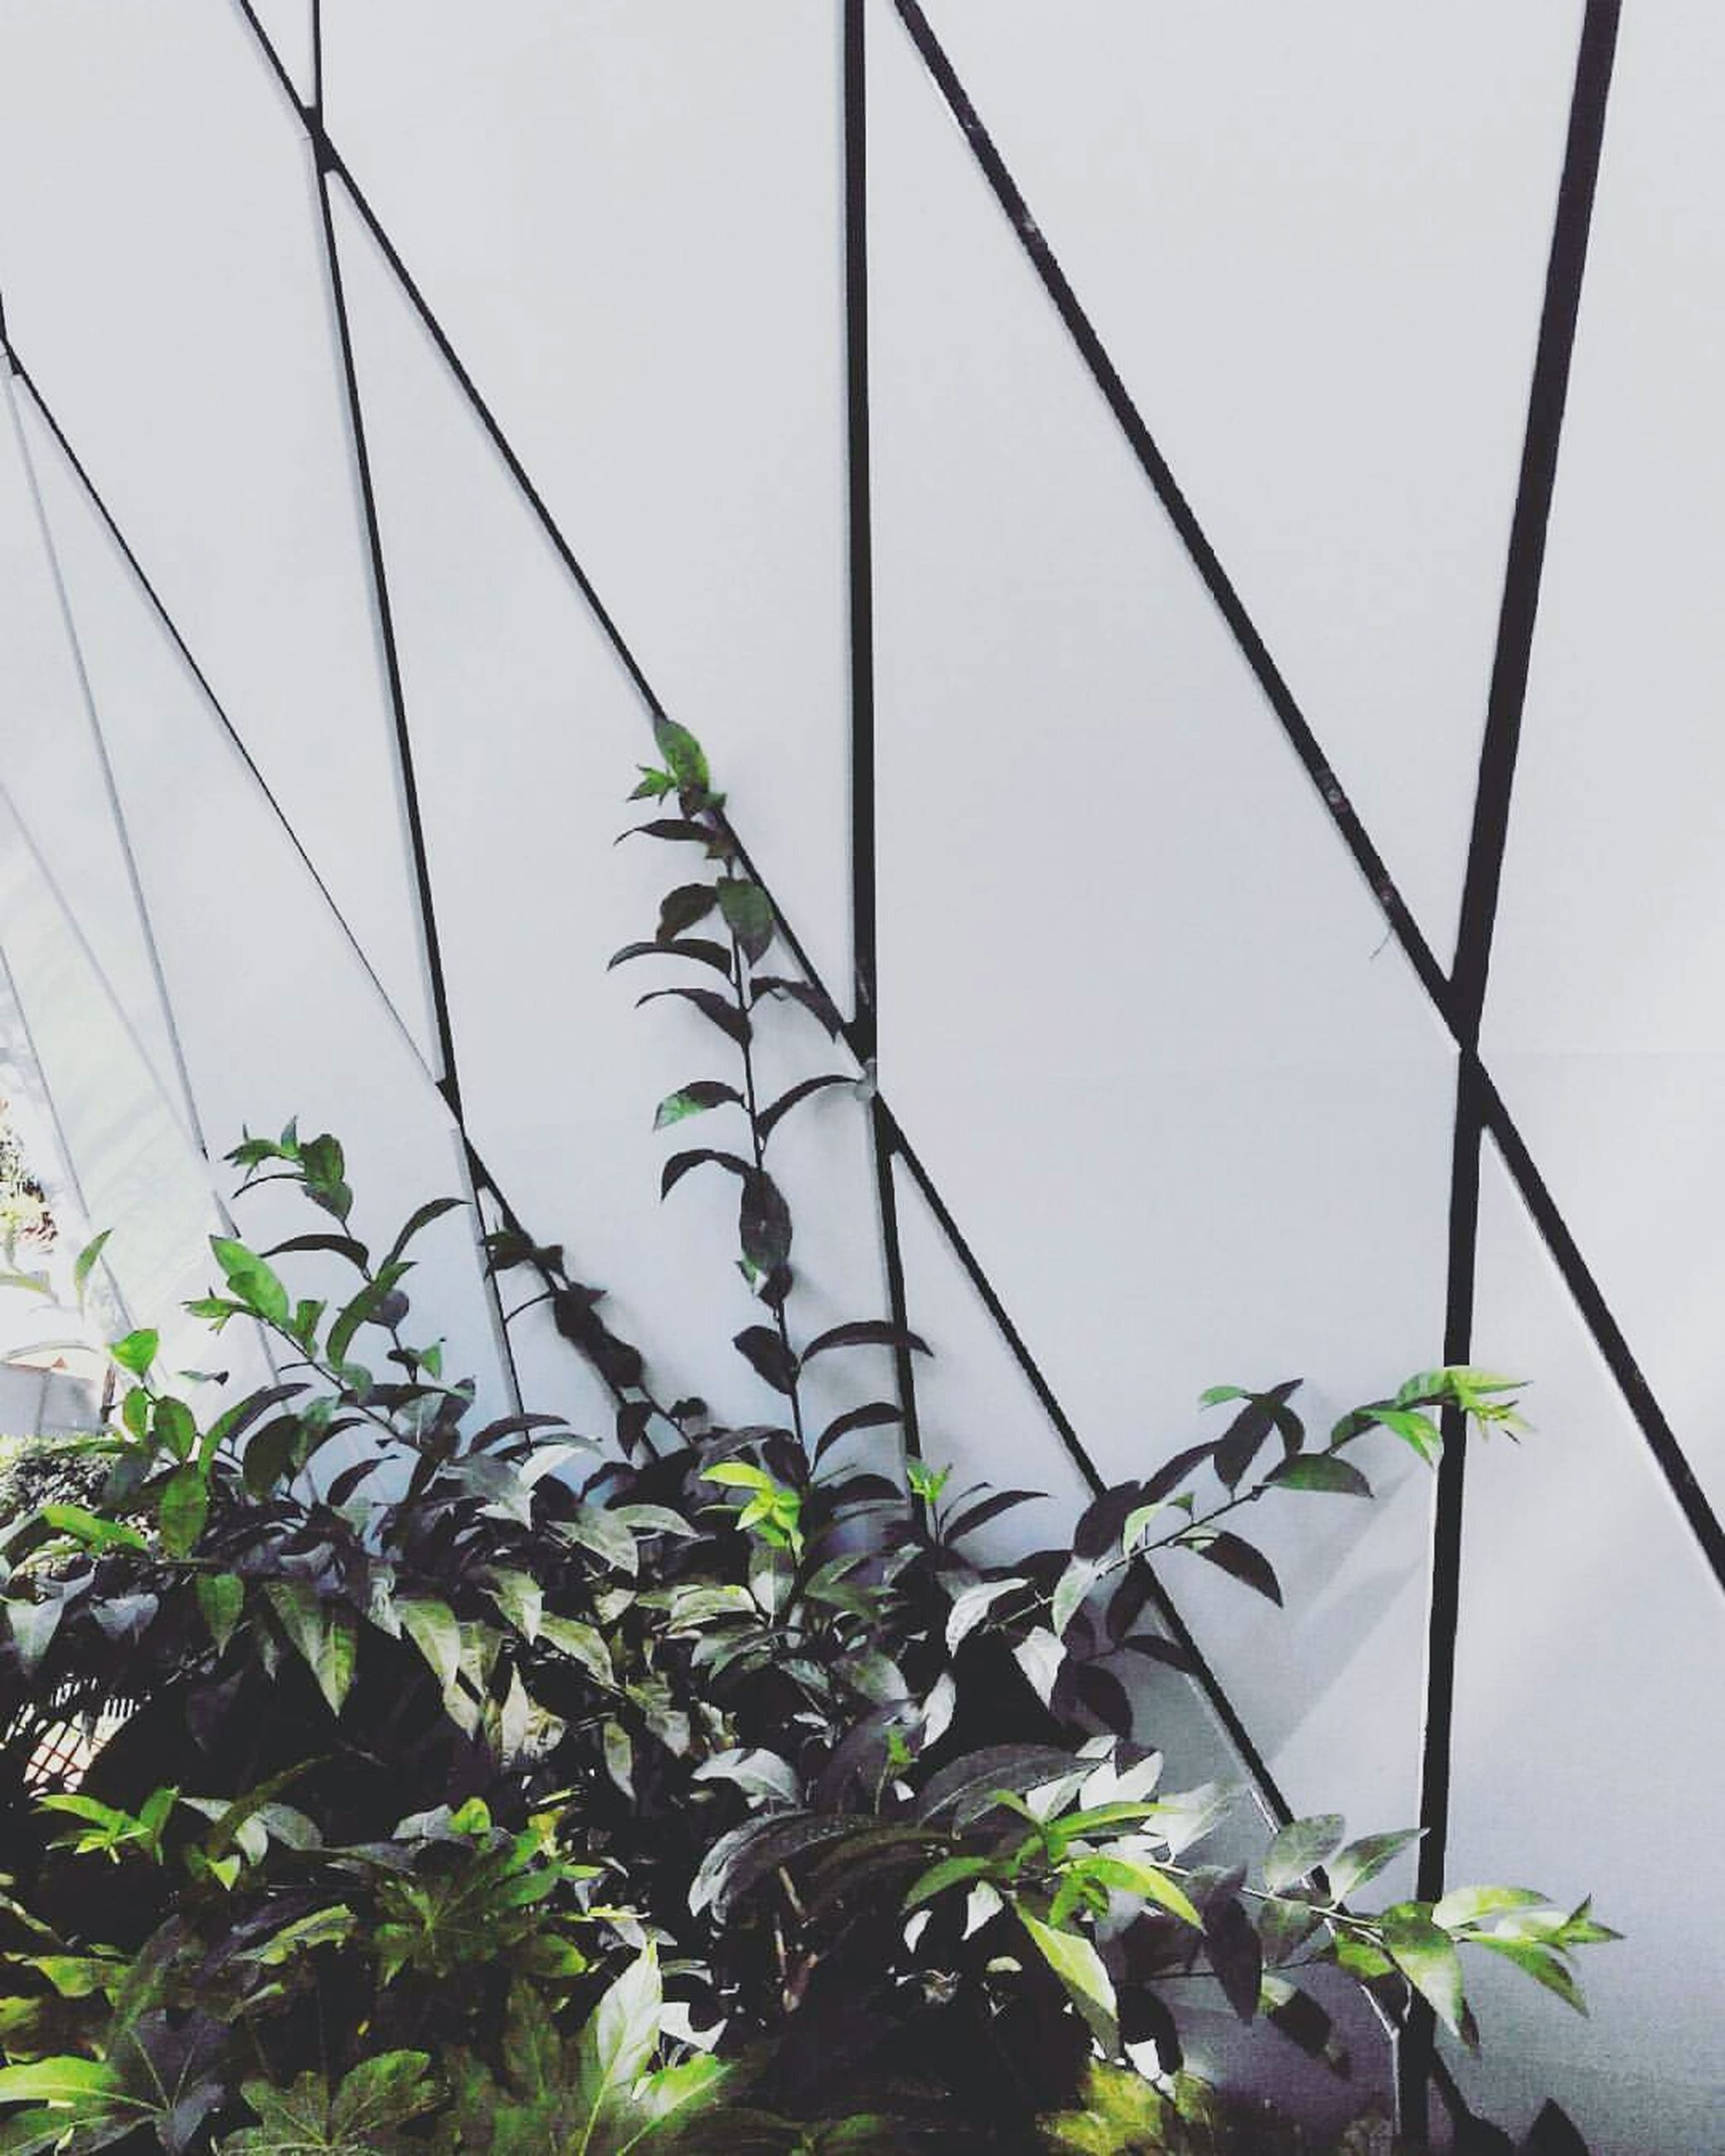 plant, growth, leaf, green color, nature, green, day, growing, no people, outdoors, close-up, stem, sky, beauty in nature, cable, fragility, tranquility